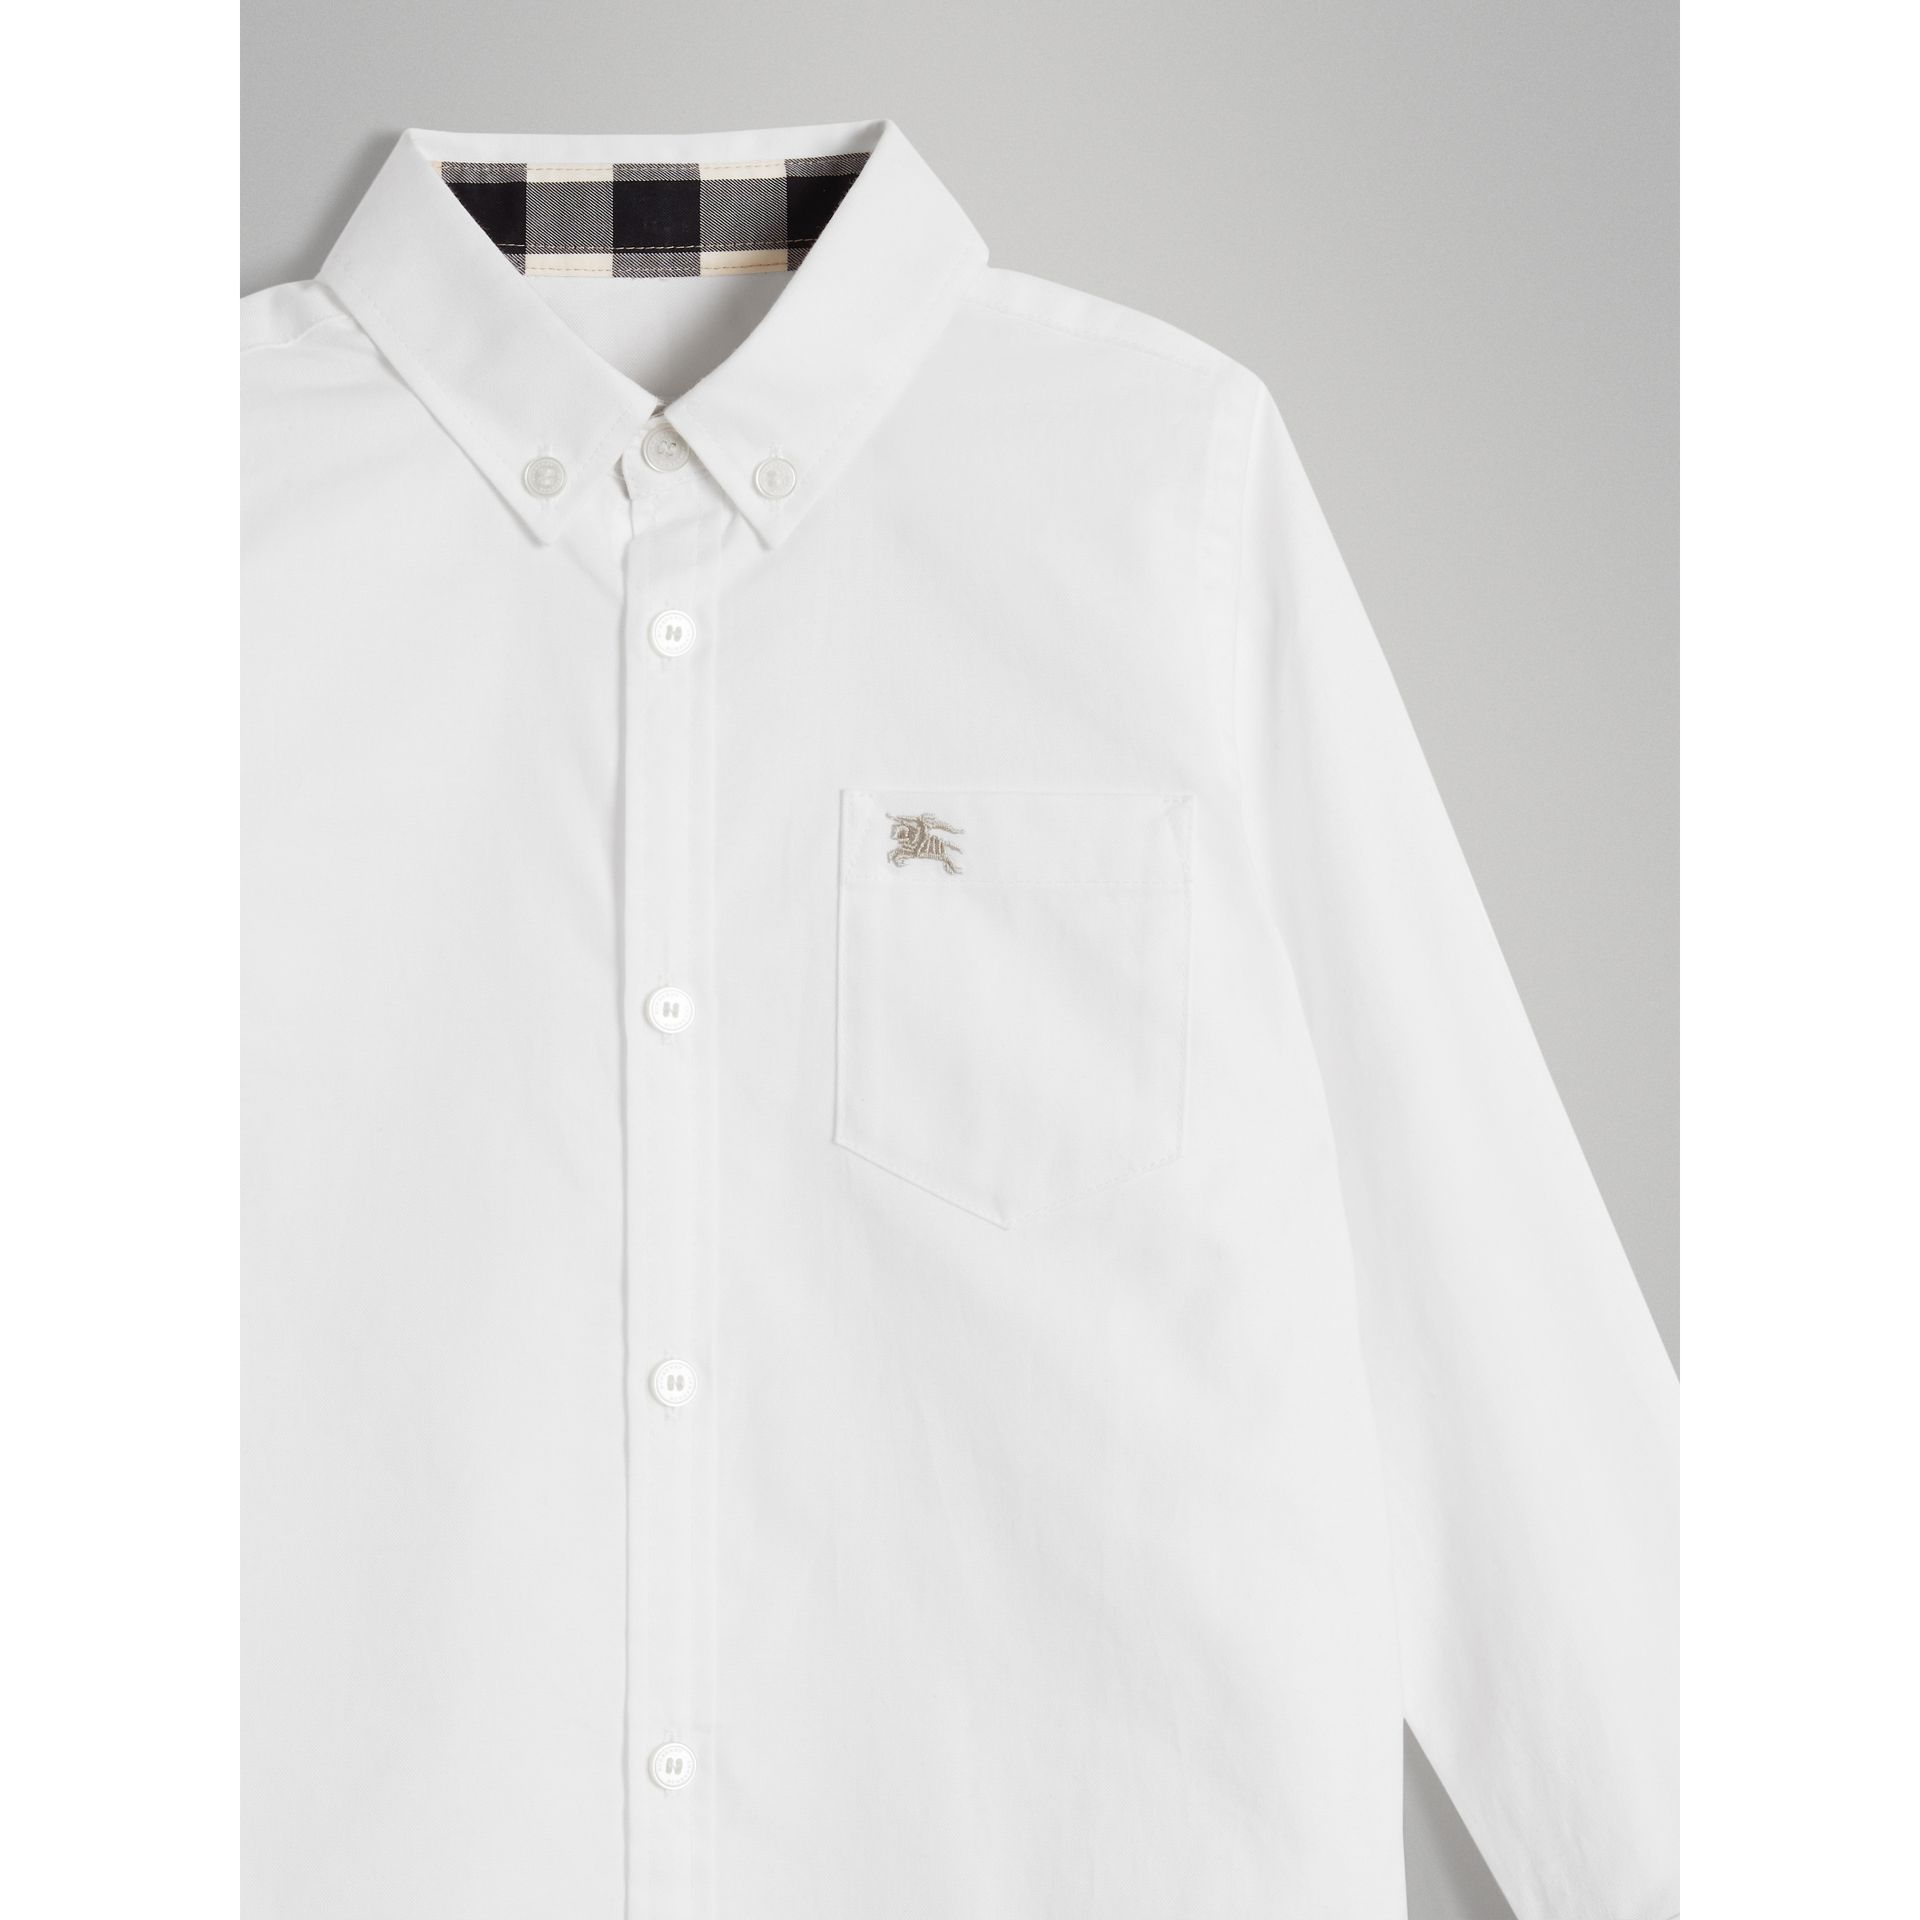 Cotton Button-down Collar Shirt in White | Burberry Singapore - gallery image 4